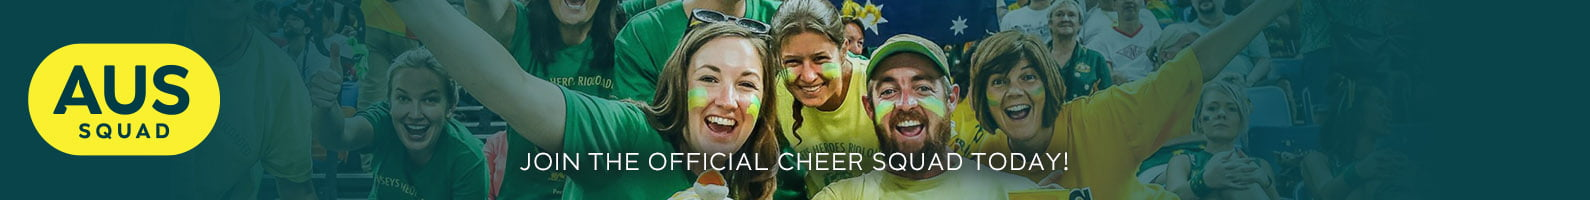 Join AUS Squad, the official cheer squad of the Australian Paralympic Team.